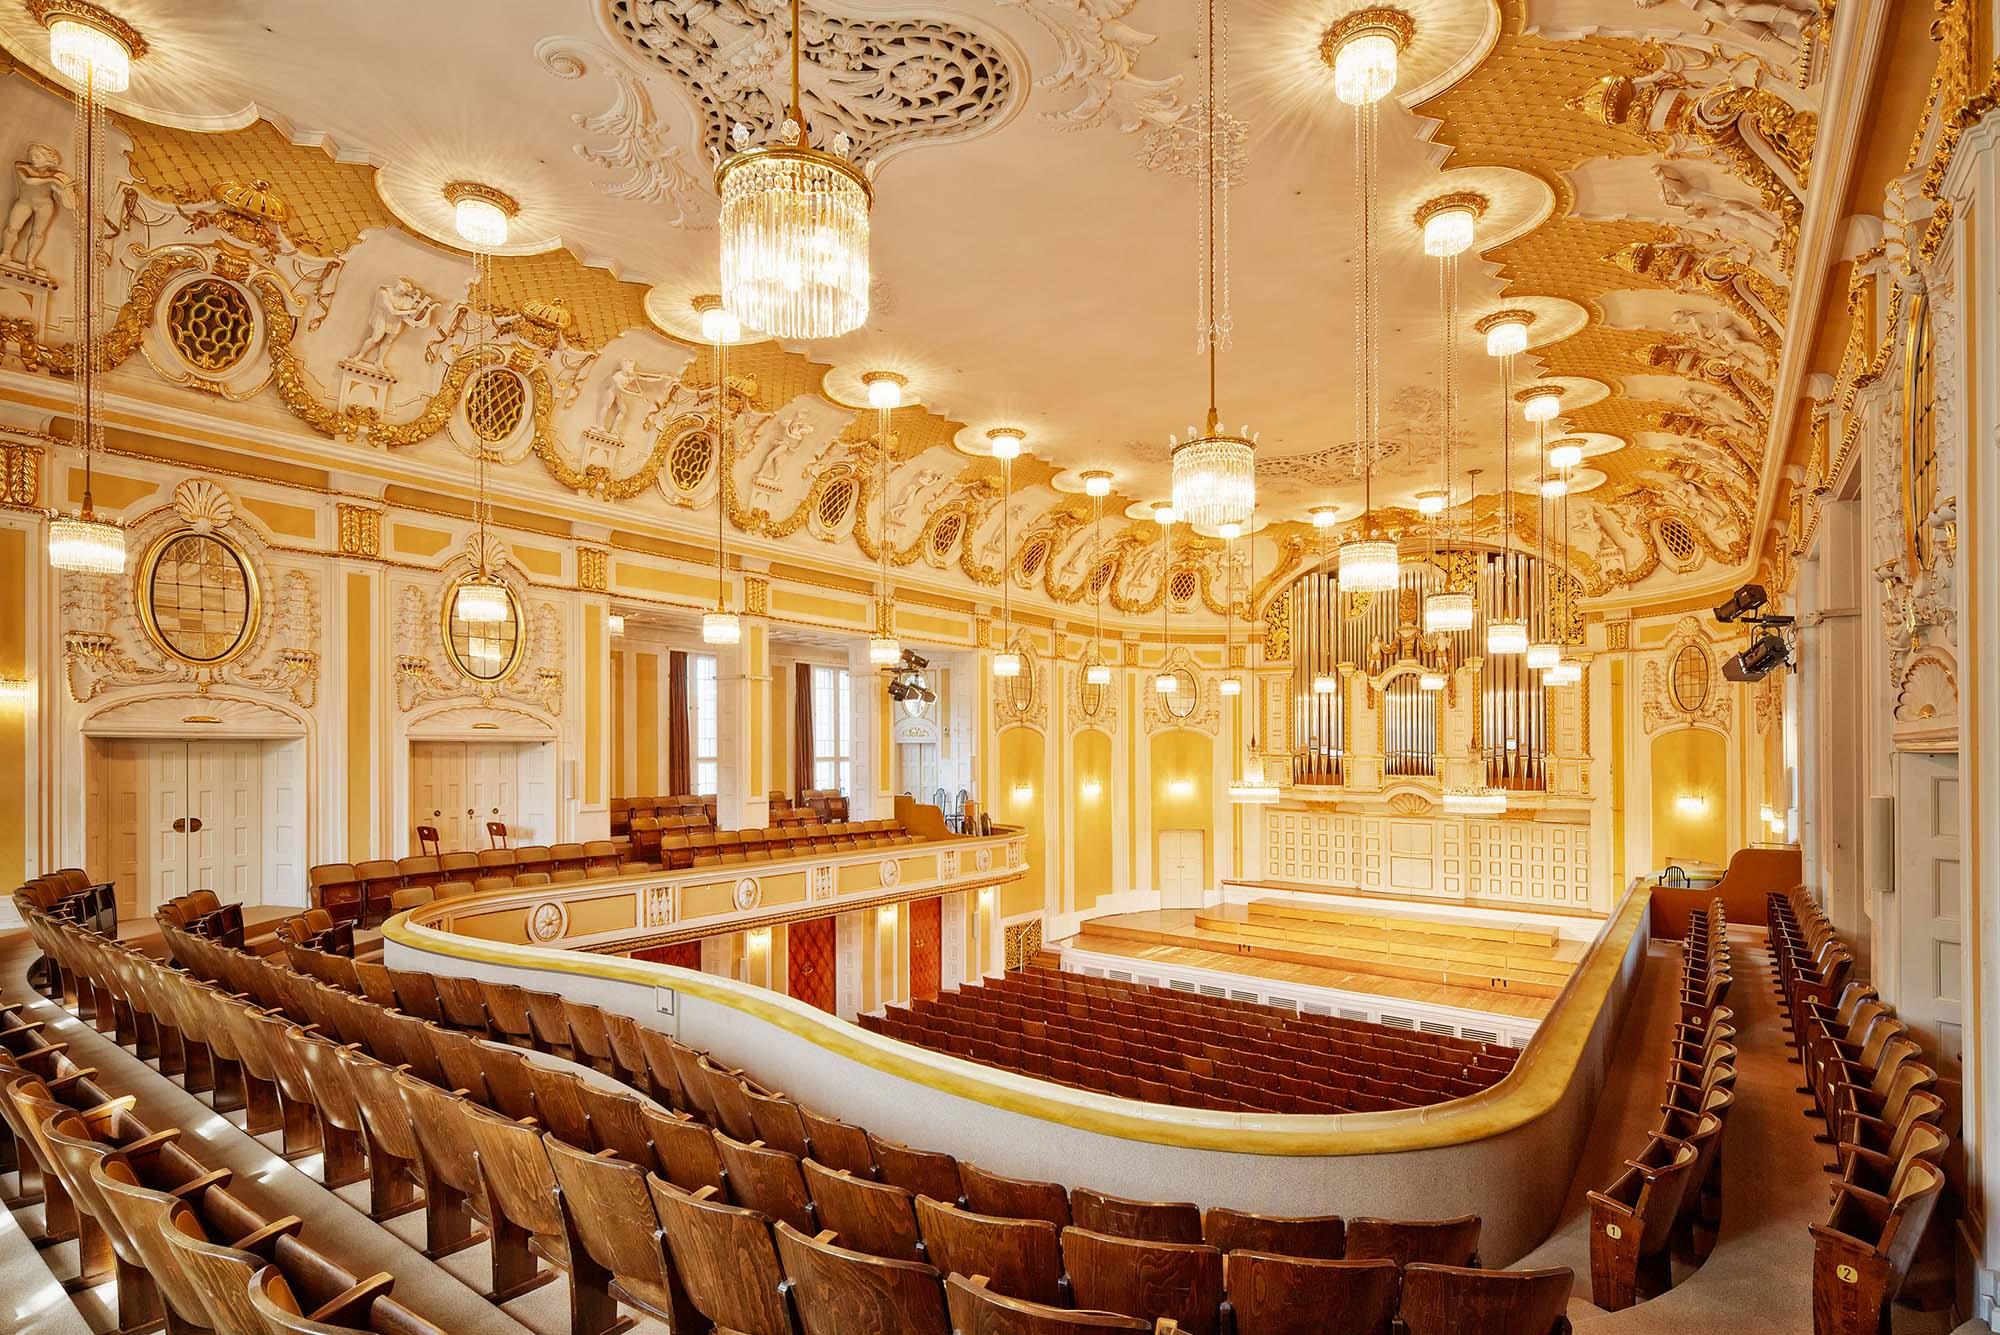 The Grand Hall of the Stiftung Mozarteum.